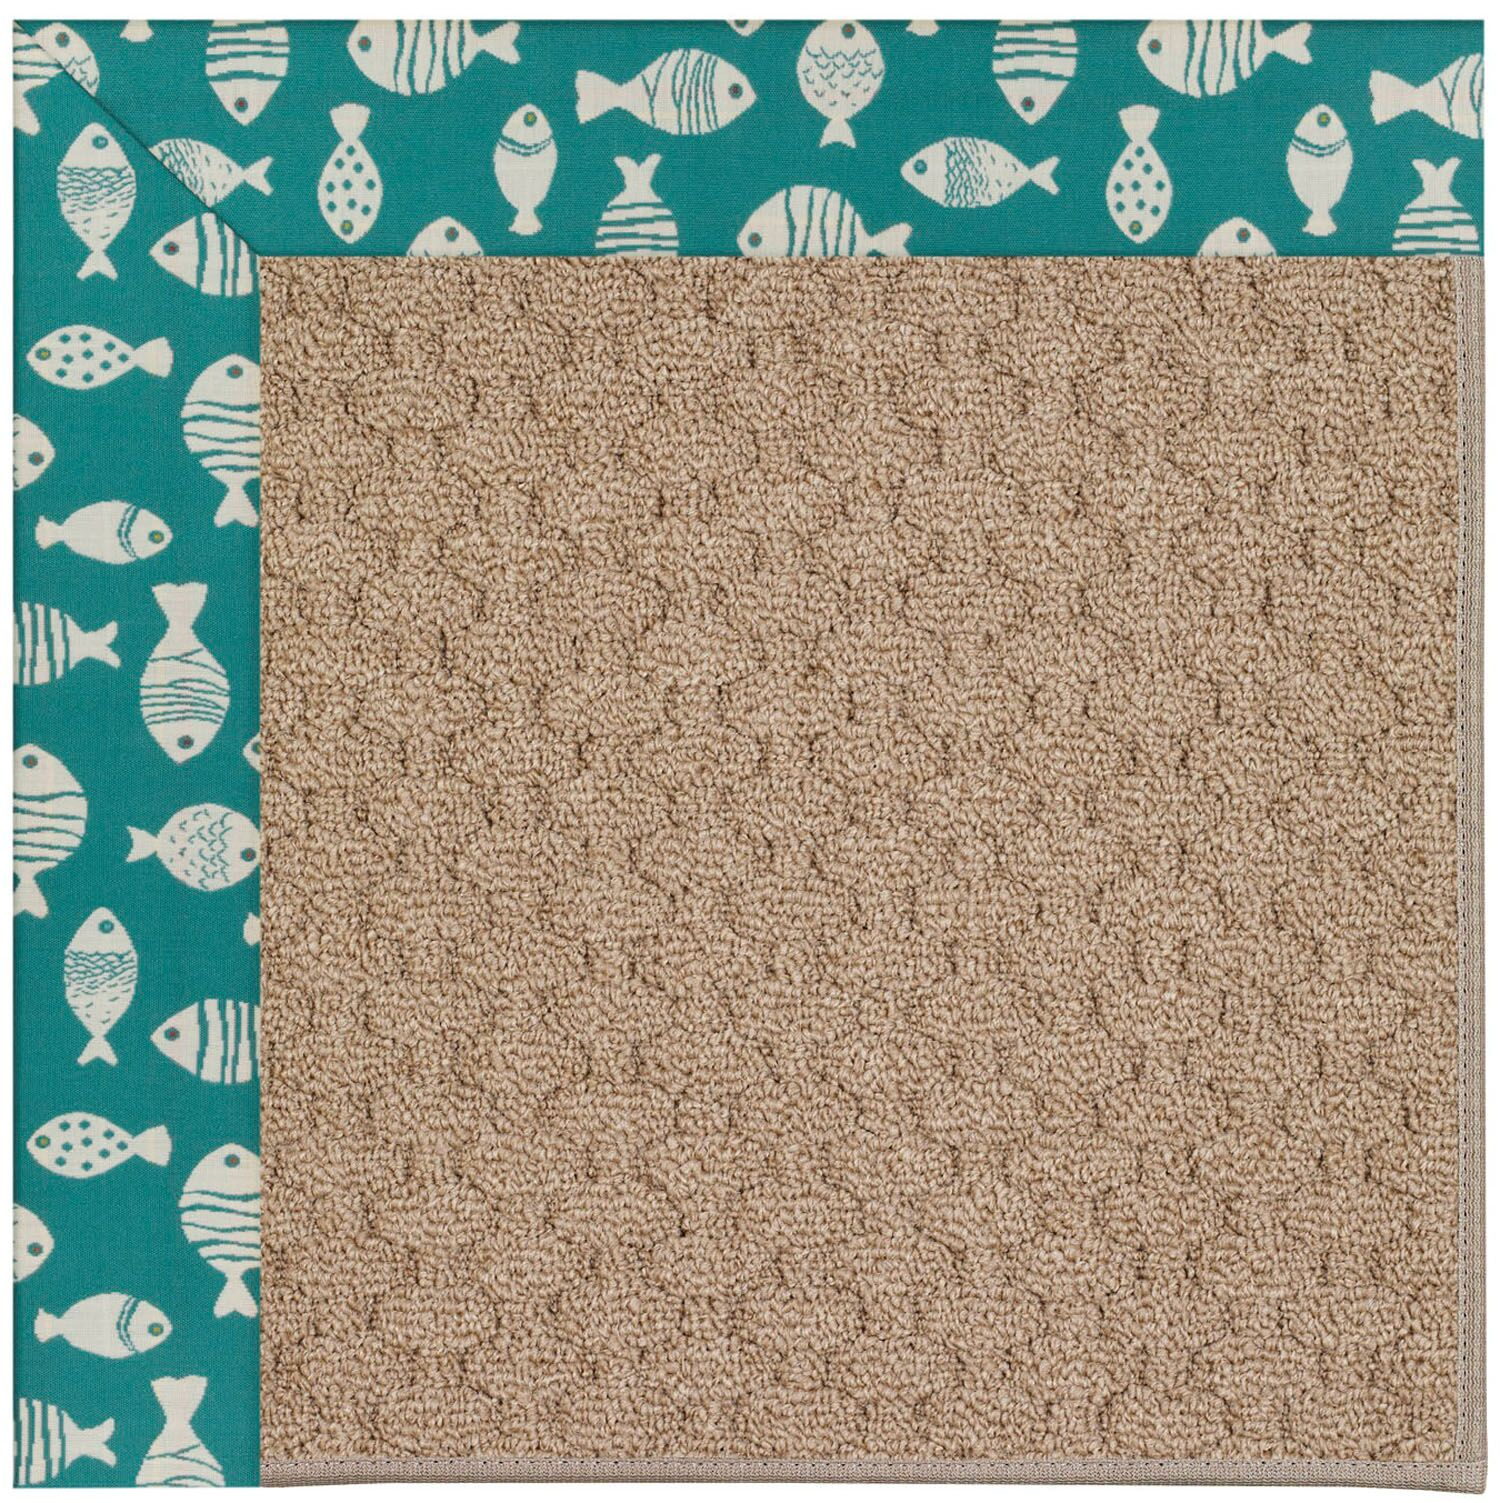 Lisle Machine Tufted Green/Brown Indoor/Outdoor Area Rug Rug Size: Rectangle 12' x 15'